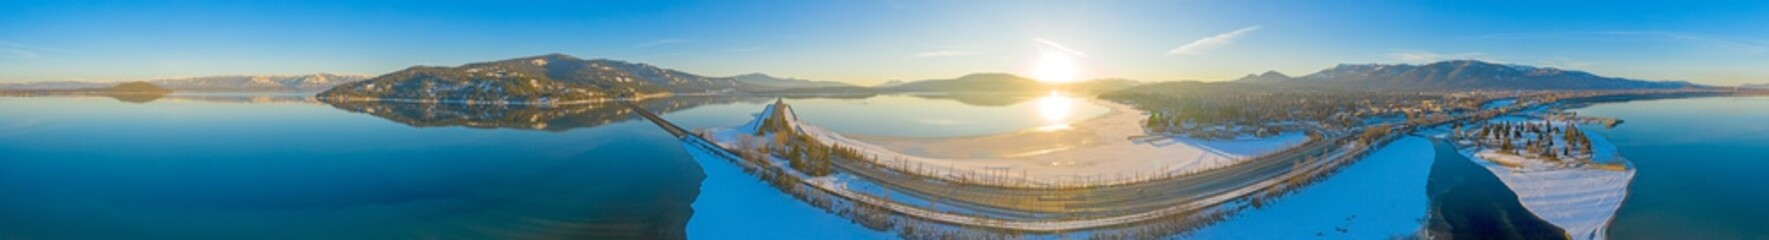 Sandpoint Idaho 360 View Waterfront at Sunset Winter Snowy Sun Panoramic Landscape